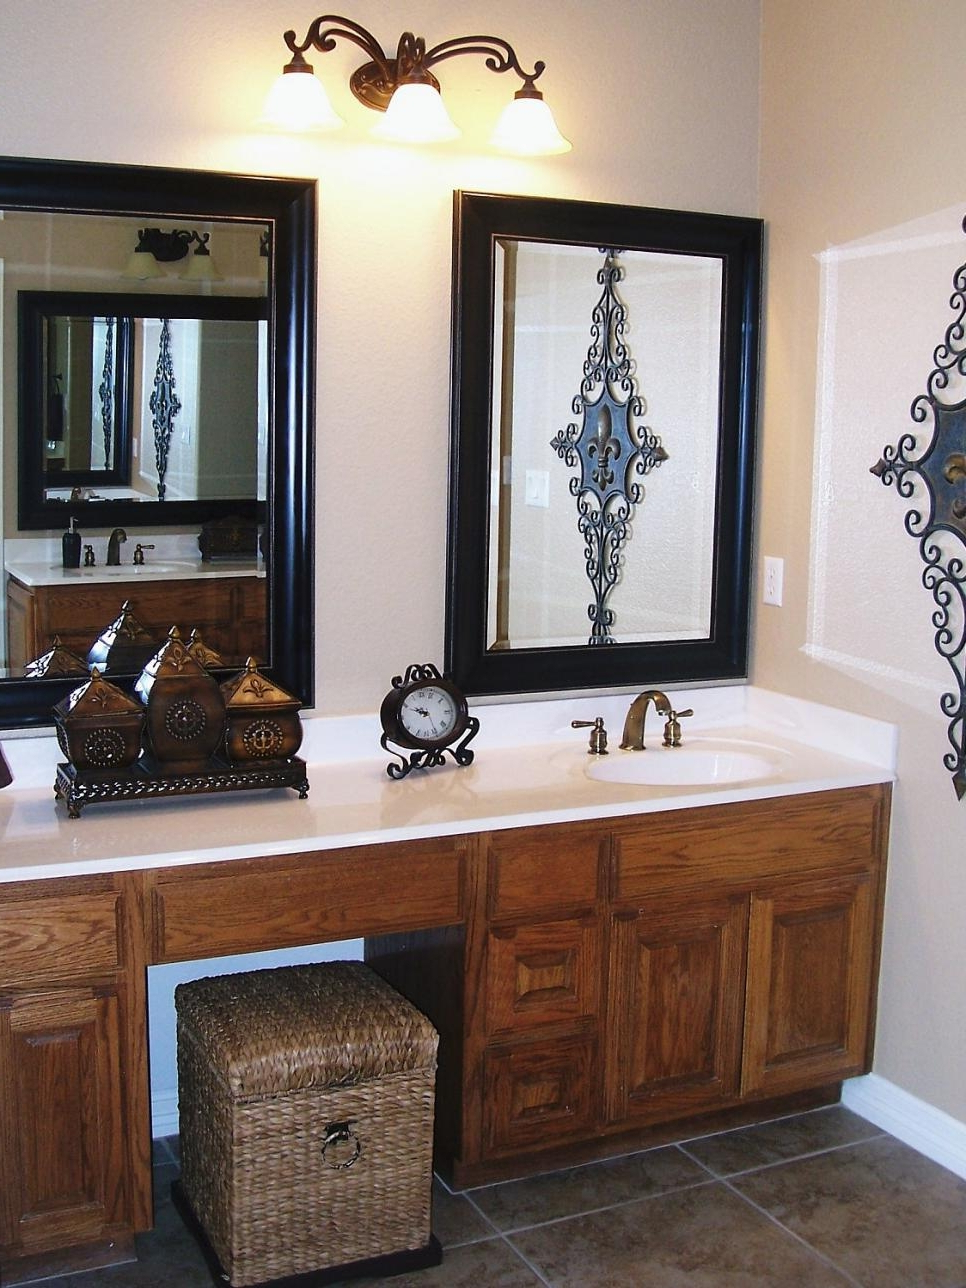 Top 27 Wicked Framed Bathroom Vanity Mirrors Grey Wall Cabinets Open Within Newest Kitchen Wall Mirrors (Gallery 19 of 20)